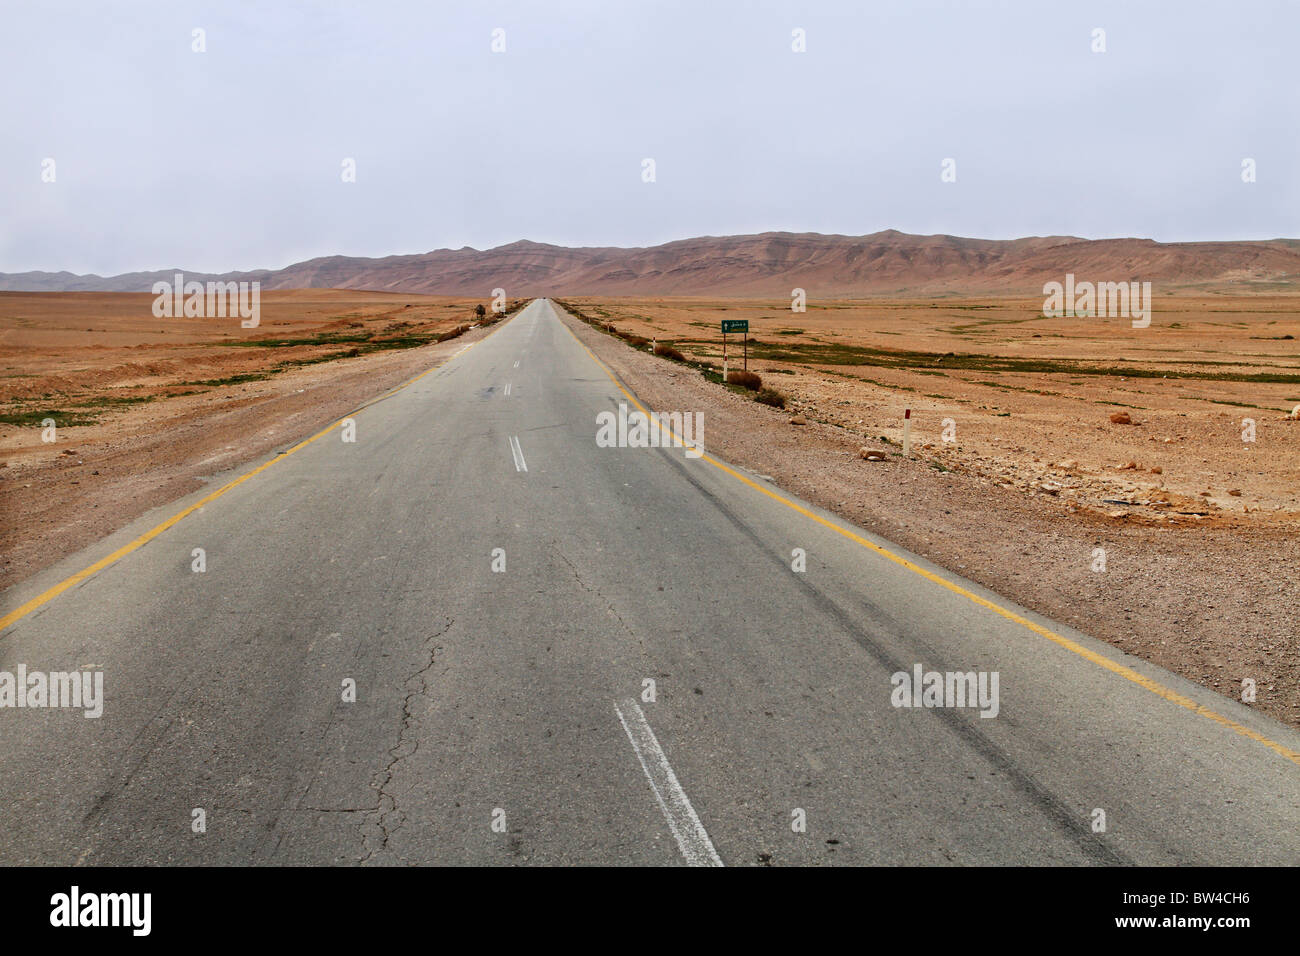 Desert road leading to Damascus in Syria. - Stock Image